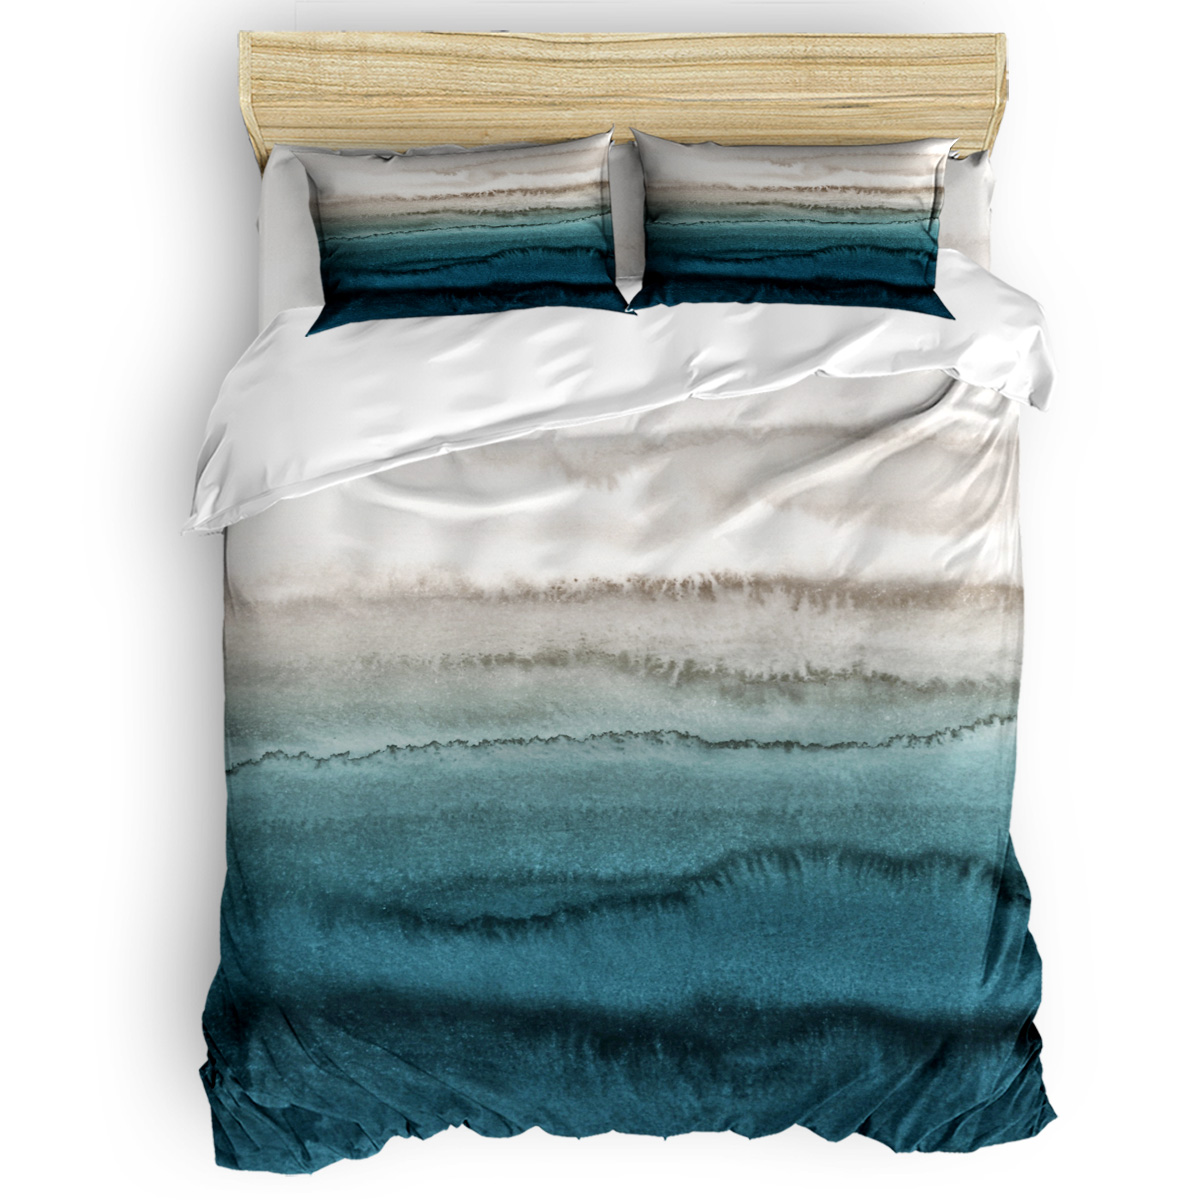 Picture of: Within The Tides Crashing Waves Teal Duvet Cover King Size Queen Size Quilt Cover Set Bedclothes Comforter Single Bedding Sets Bedding Sets Aliexpress